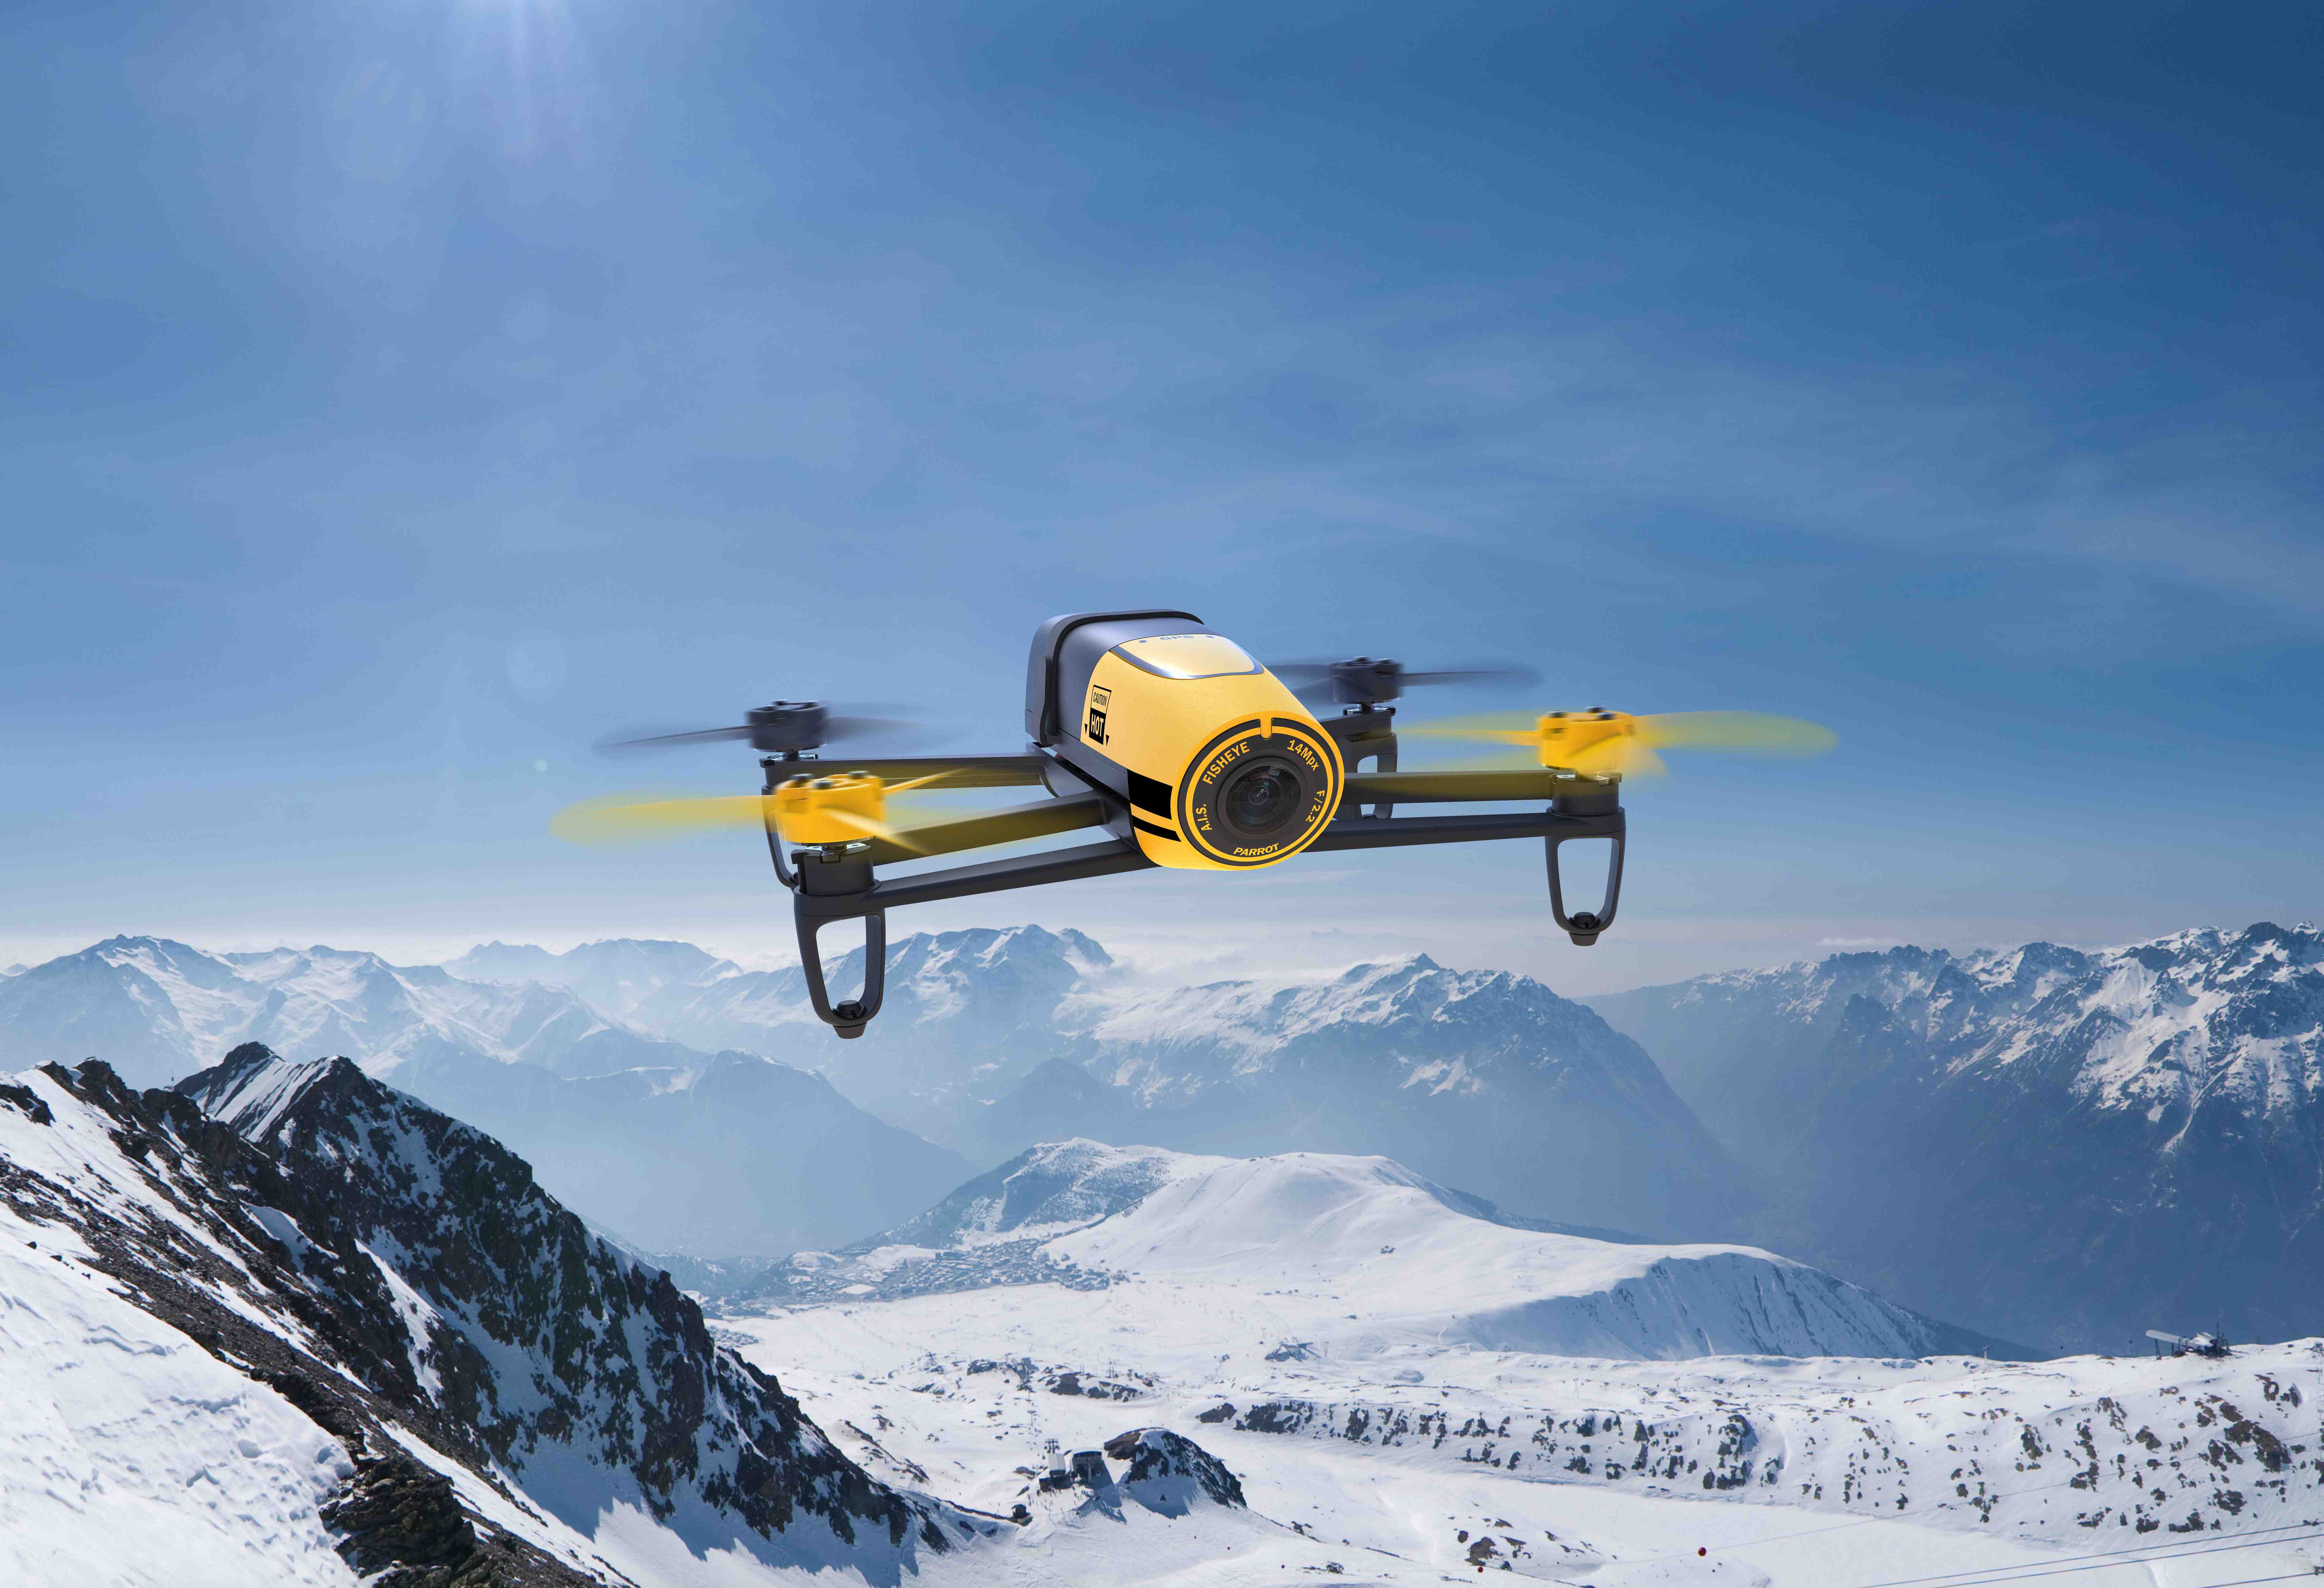 bebop drone parrot with Parrot Bebop Drone In Arrivo Terza Generazione Quadricottero Per Riprese Aeree Spettacolari on GdyniaPoland together with Le Bebop De Parrot Le Drone Qui Tombe A Pic furthermore Watch additionally F 117852414 Fra3662581028780 also 200Pcs Sexy Red Lips Flowers Potted Plant Flower of Rosy Lips Seeds Bonsai Plants Seeds.